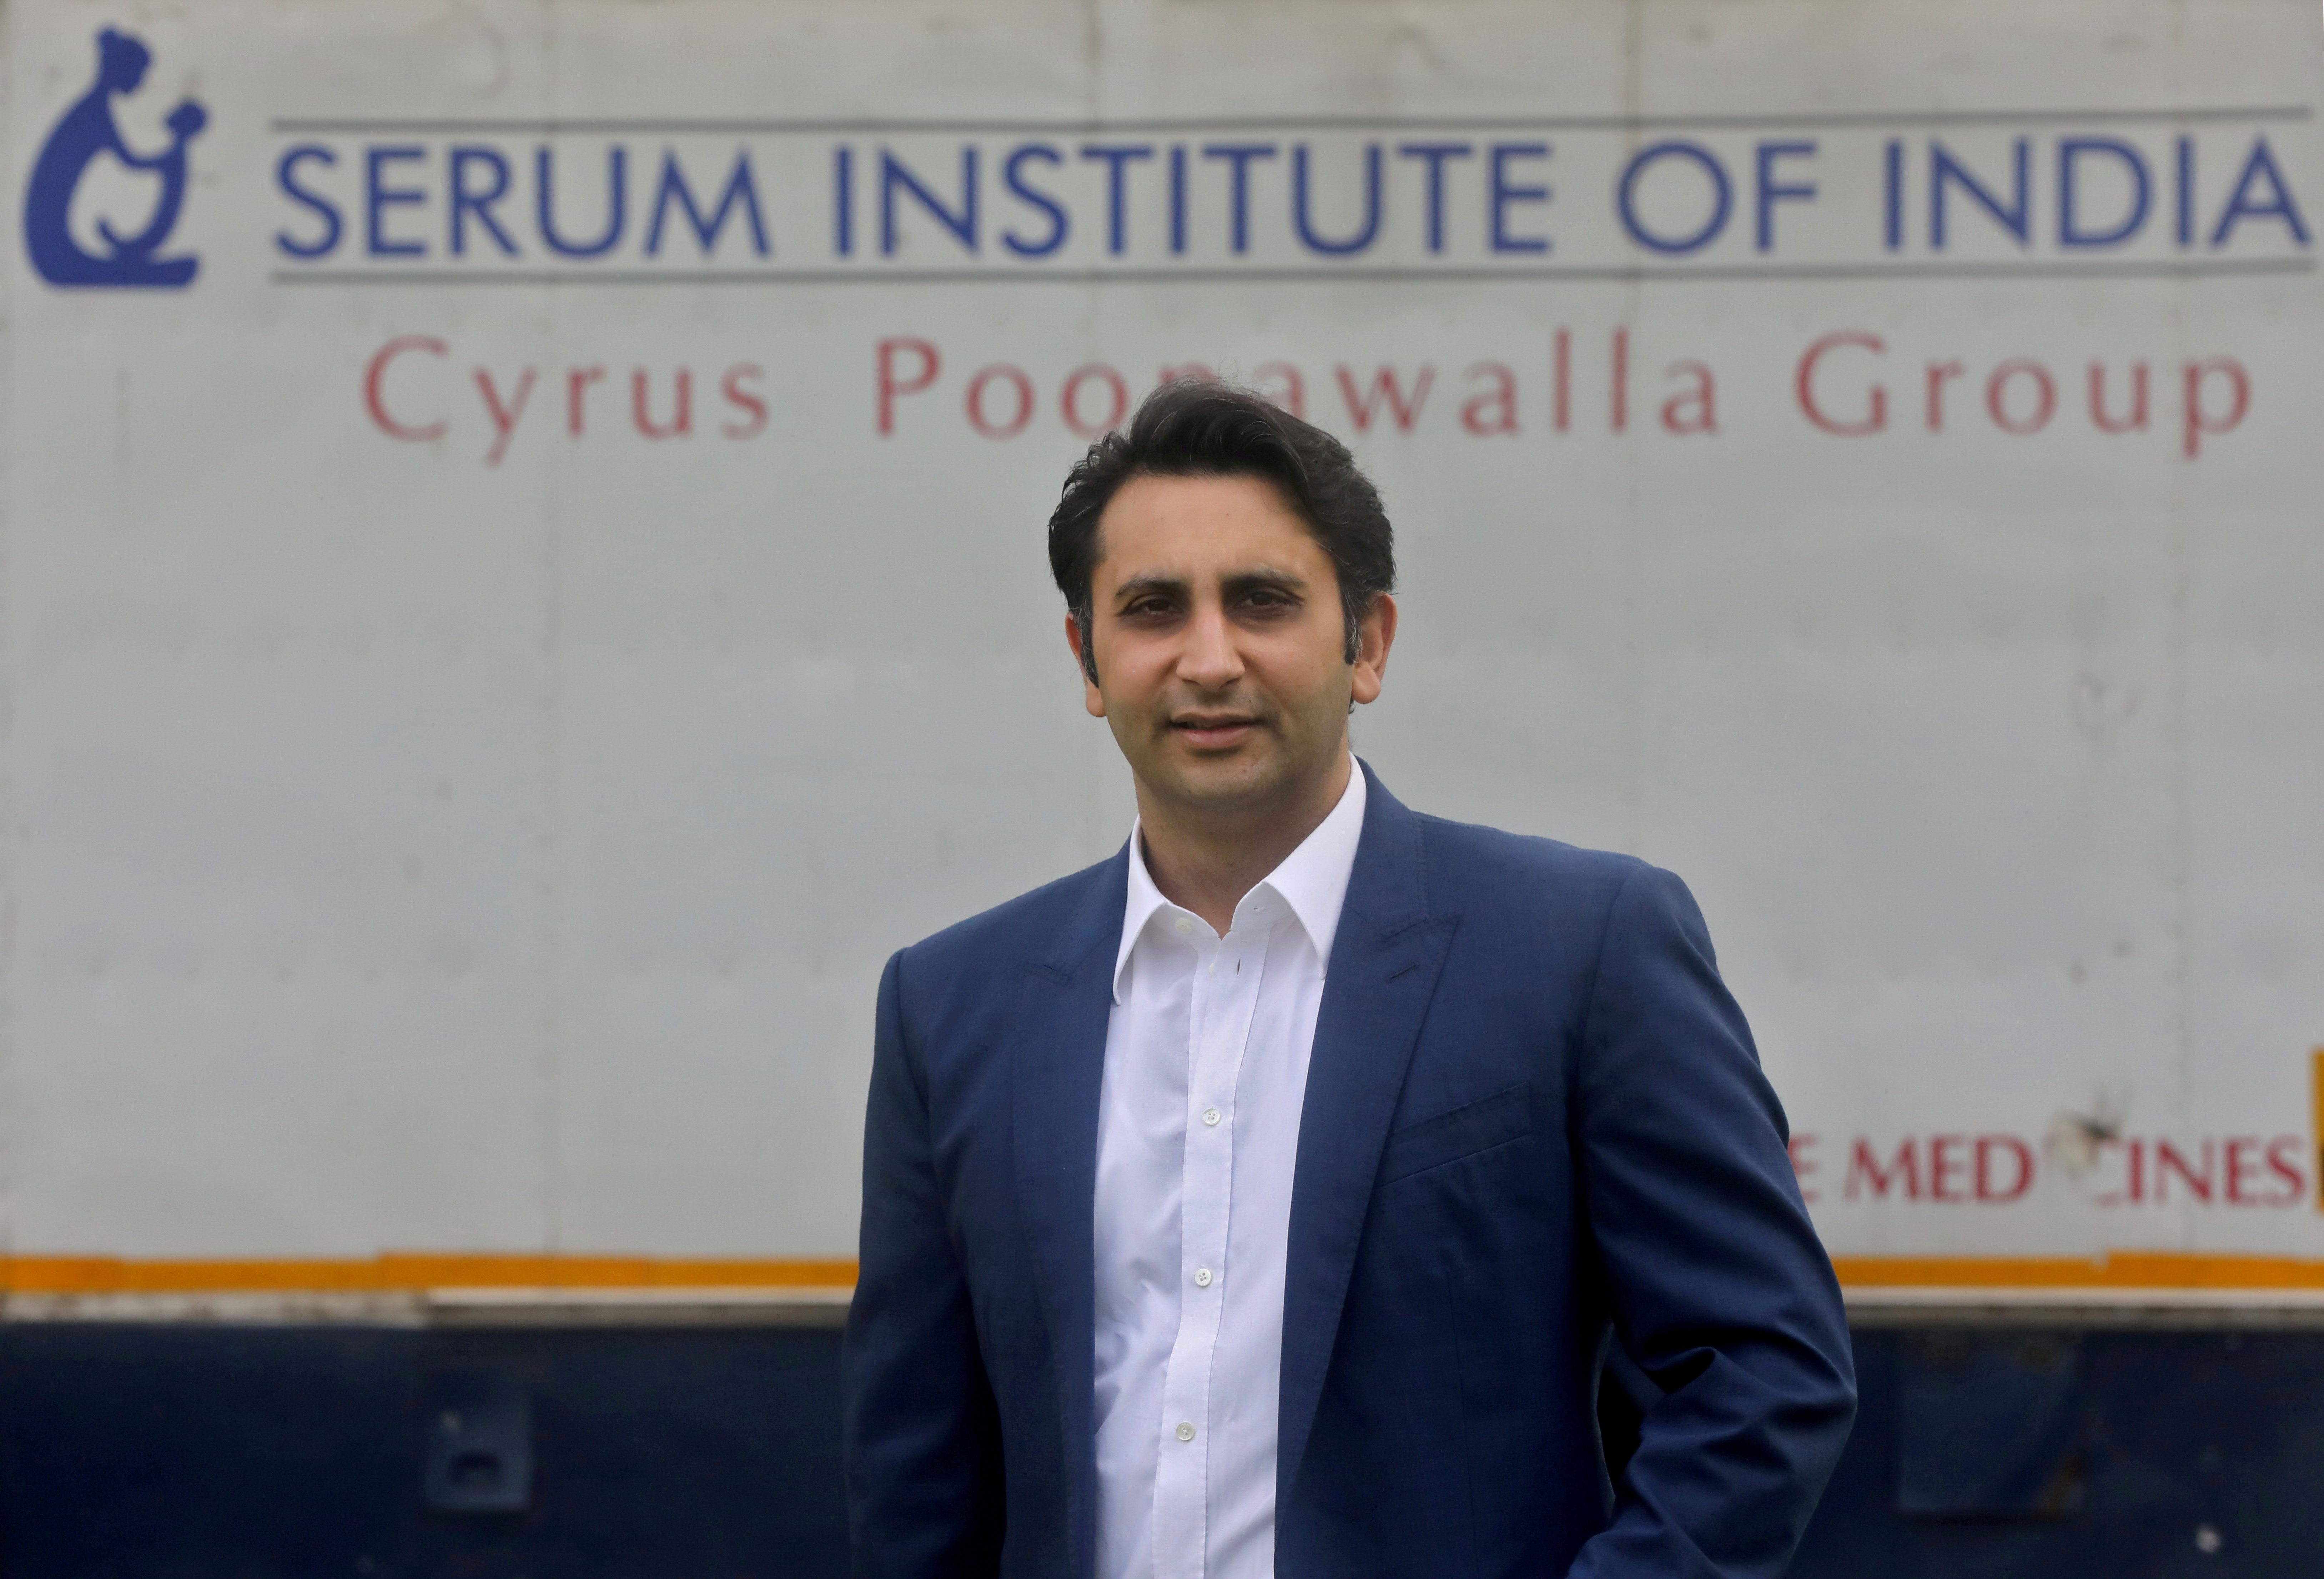 Adar Poonawalla, Chief Executive Officer (CEO) of the Serum Institute of India poses for a picture at the Serum Institute of India, Pune, India, 30 November 2020. REUTERS/Francis Mascarenhas/File Photo